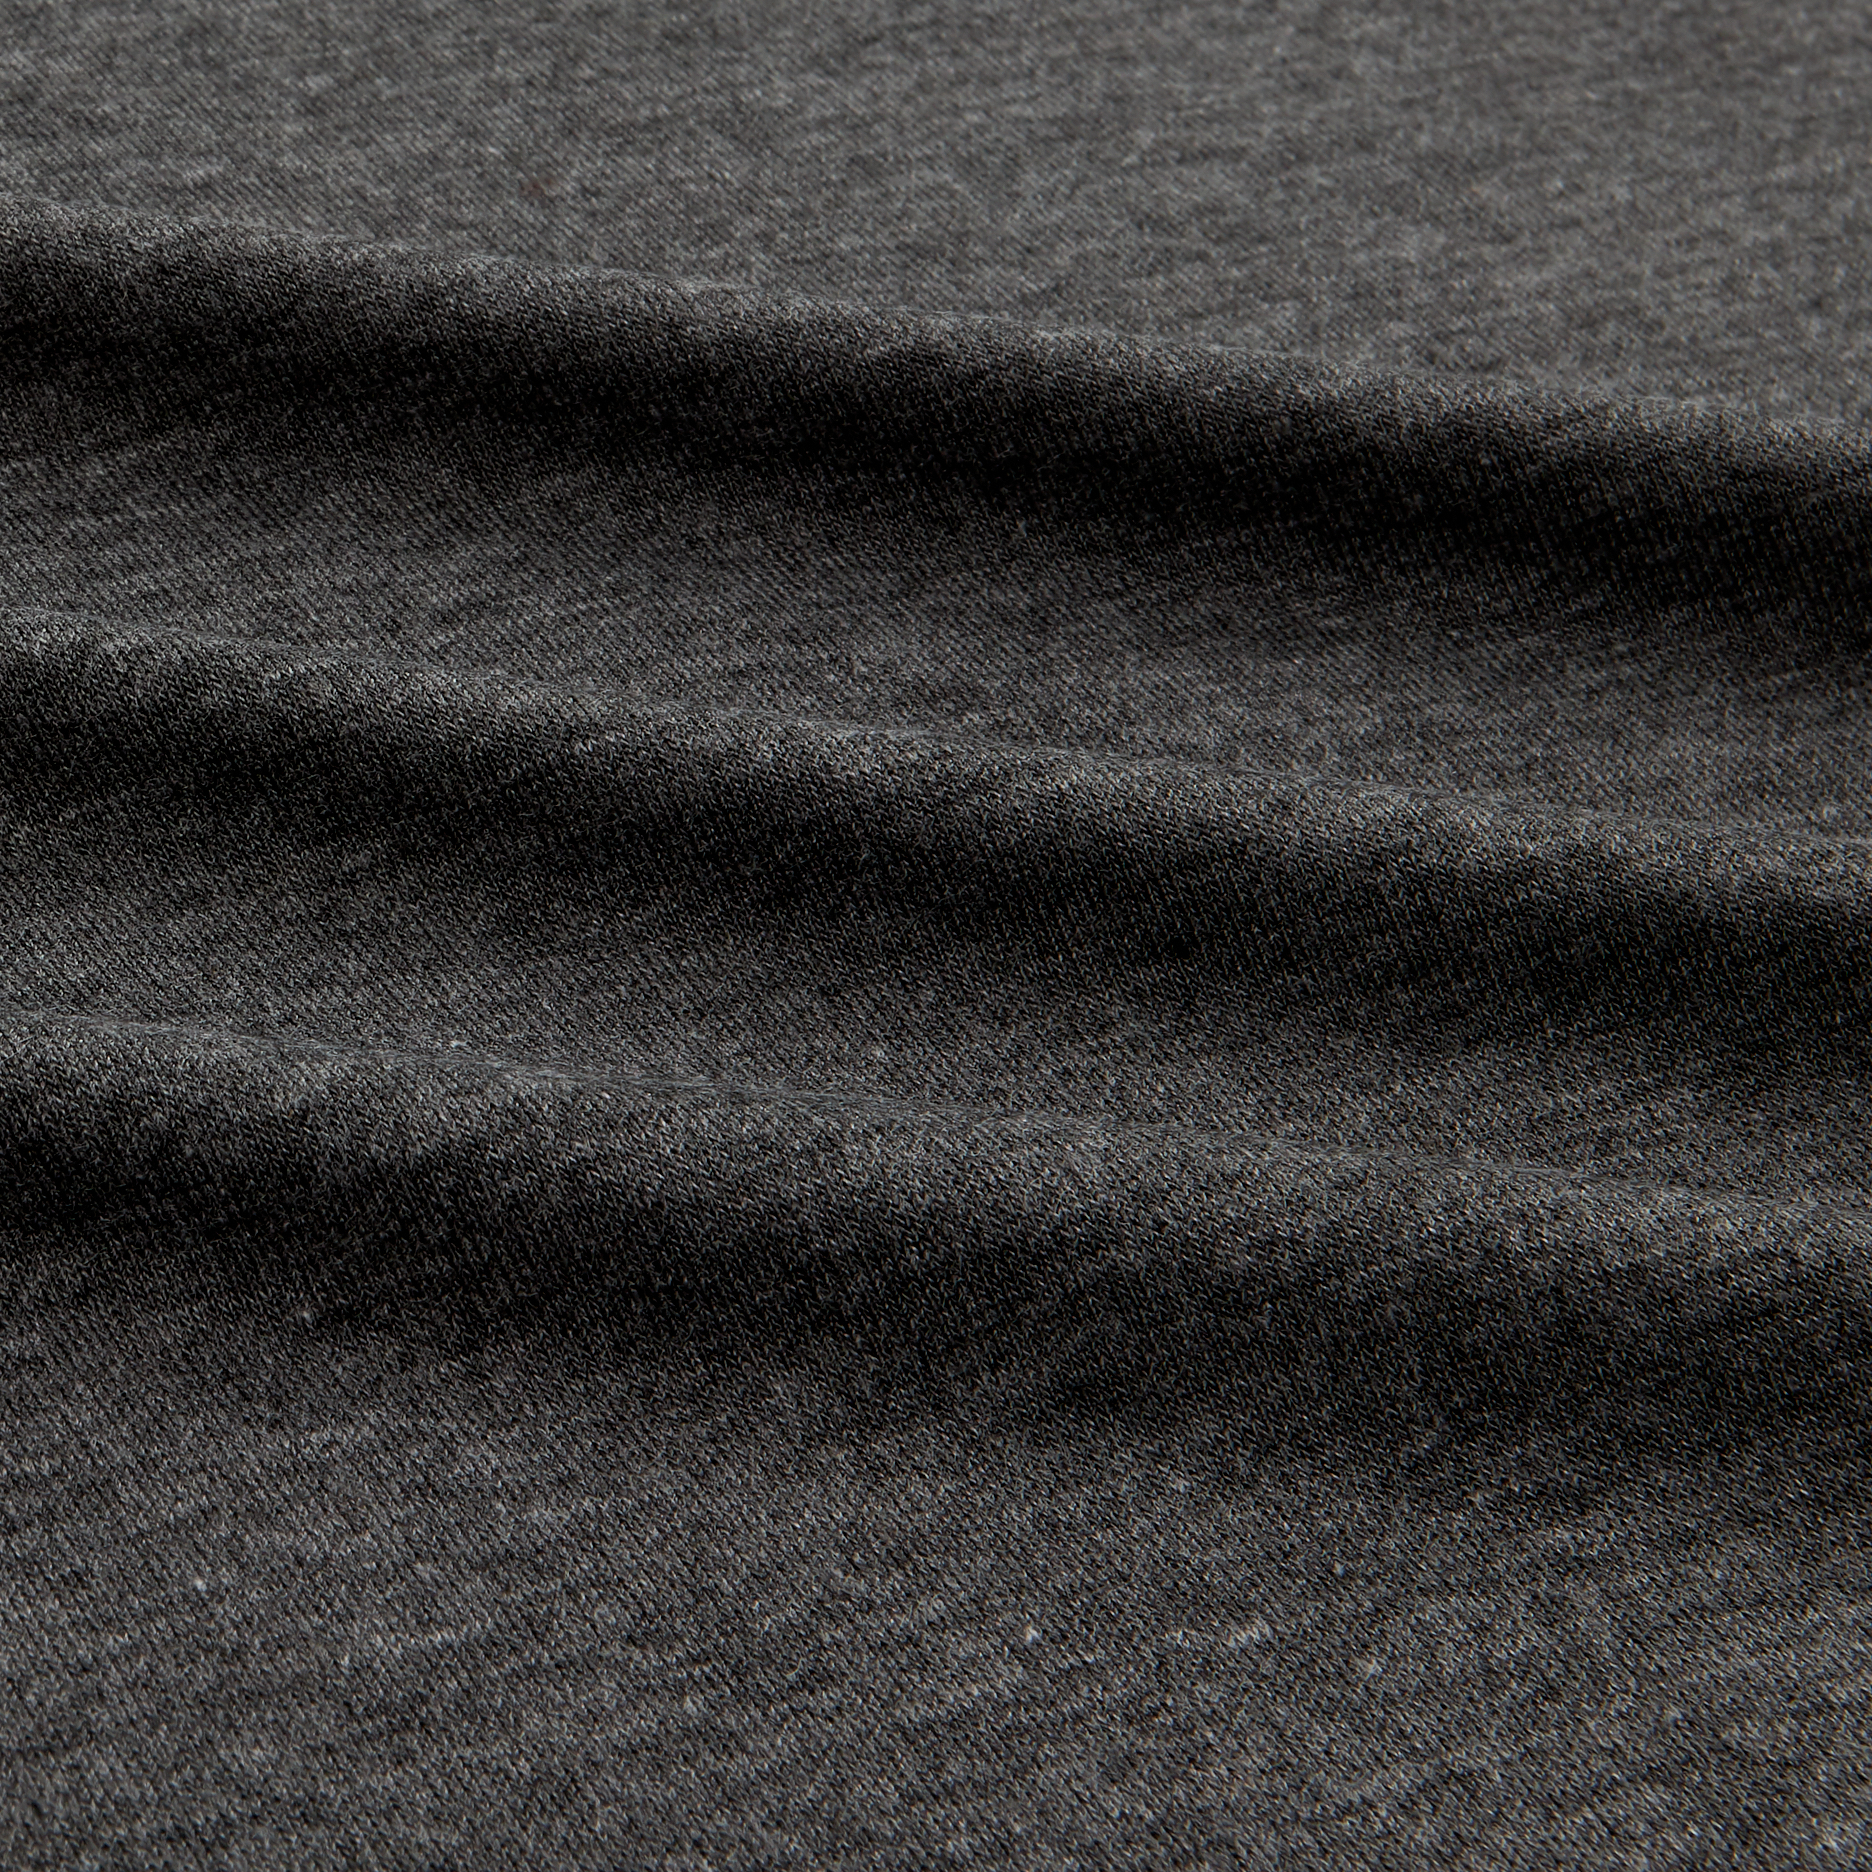 Rayon Spandex Jersey Knit Solid Charcoal Fabric